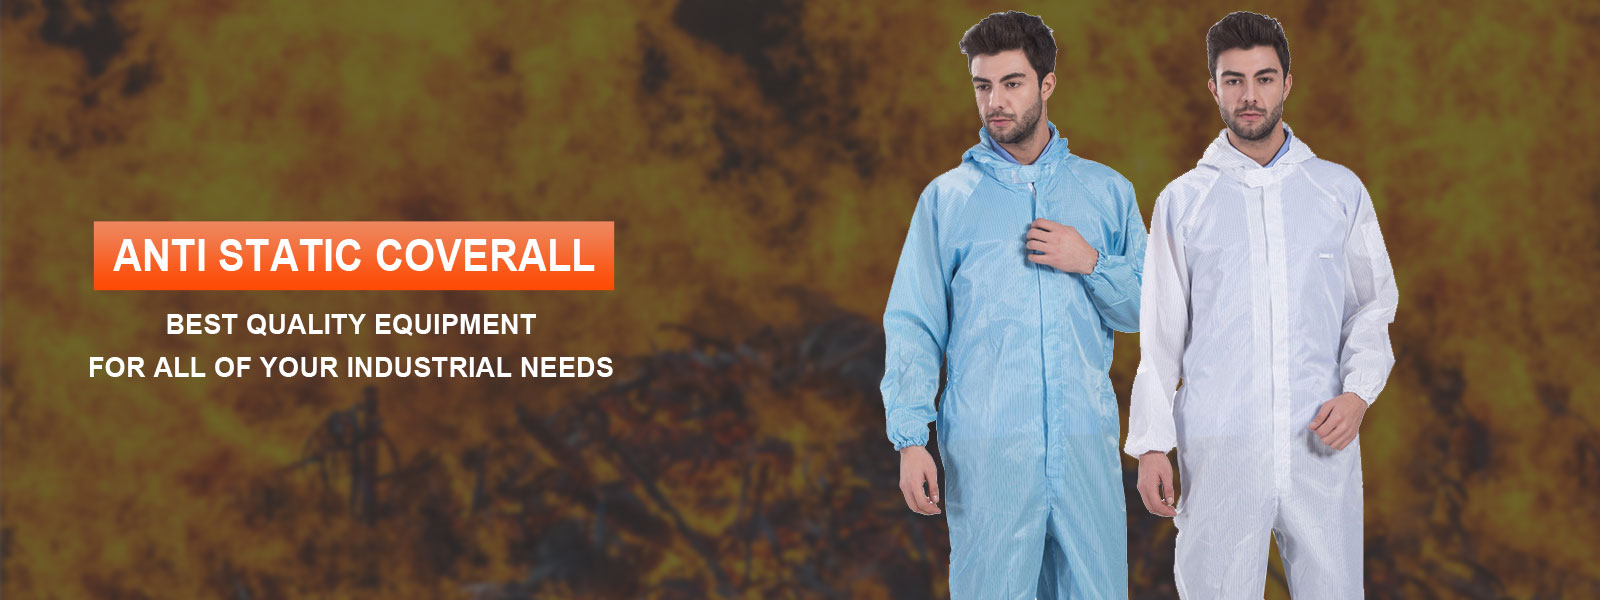 Anti Static Coverall Manufacturers in Mayotte